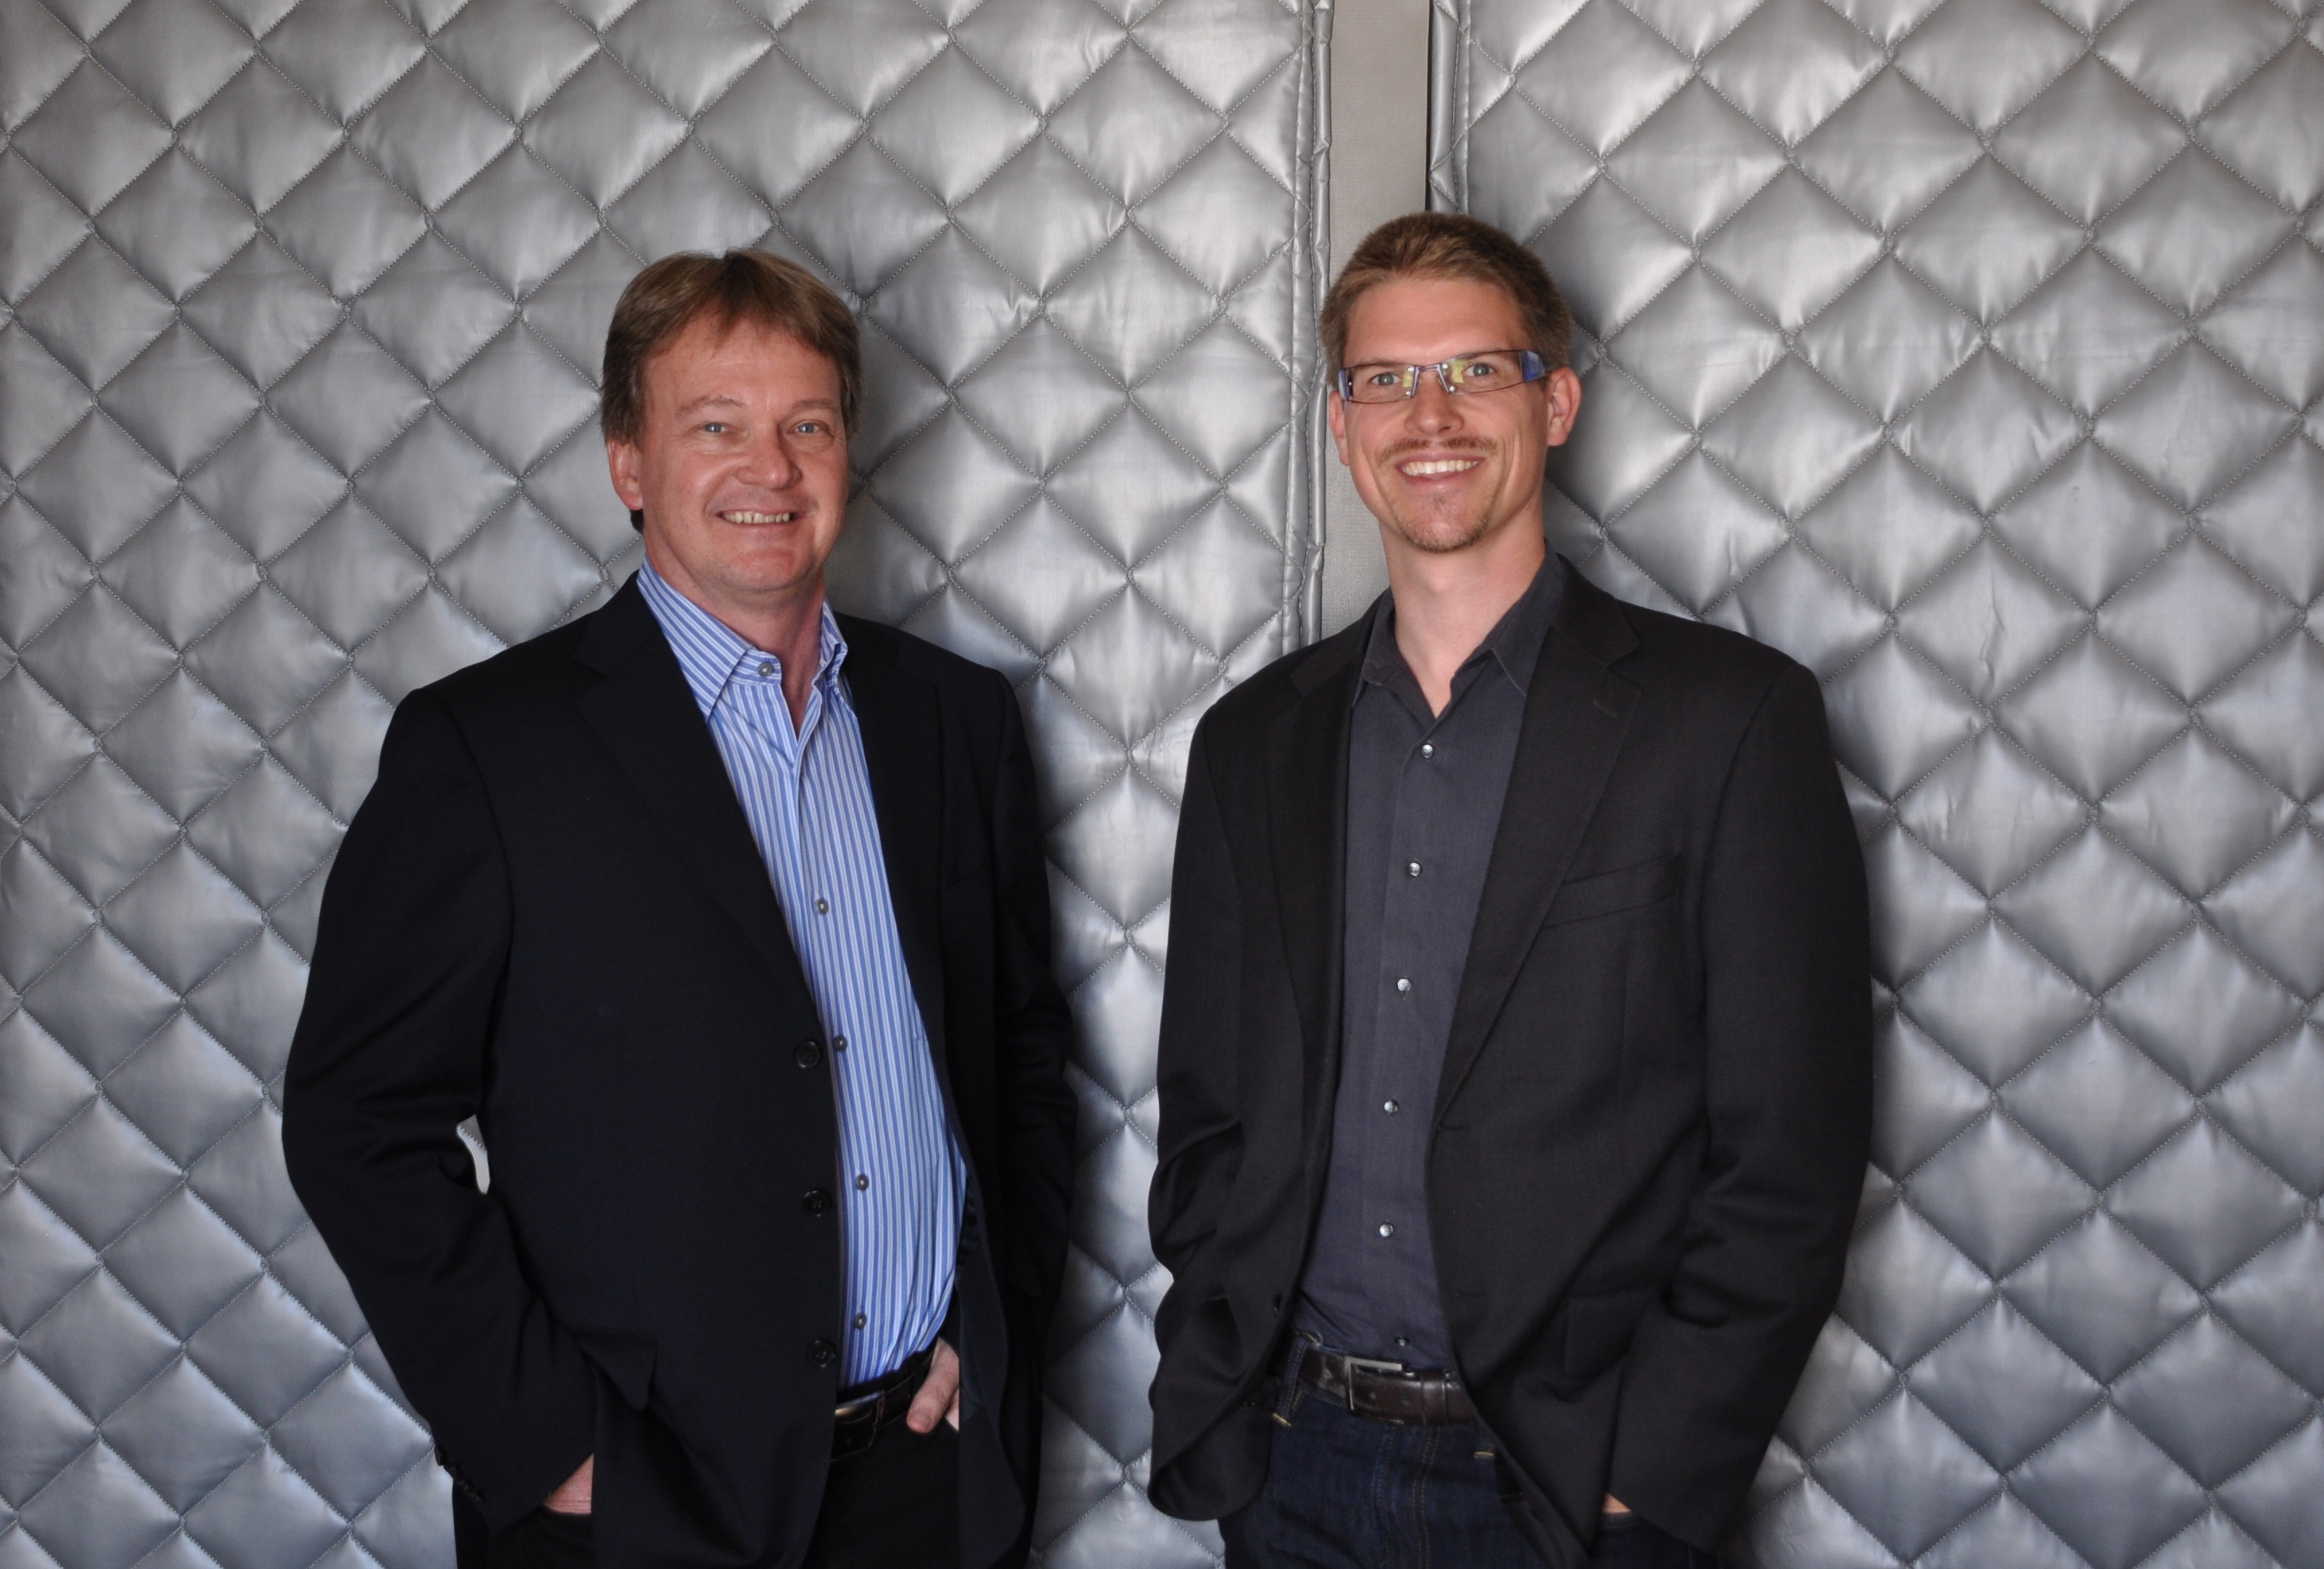 Nebula's new CEO Gordon Stitt and founder Chris Kemp.